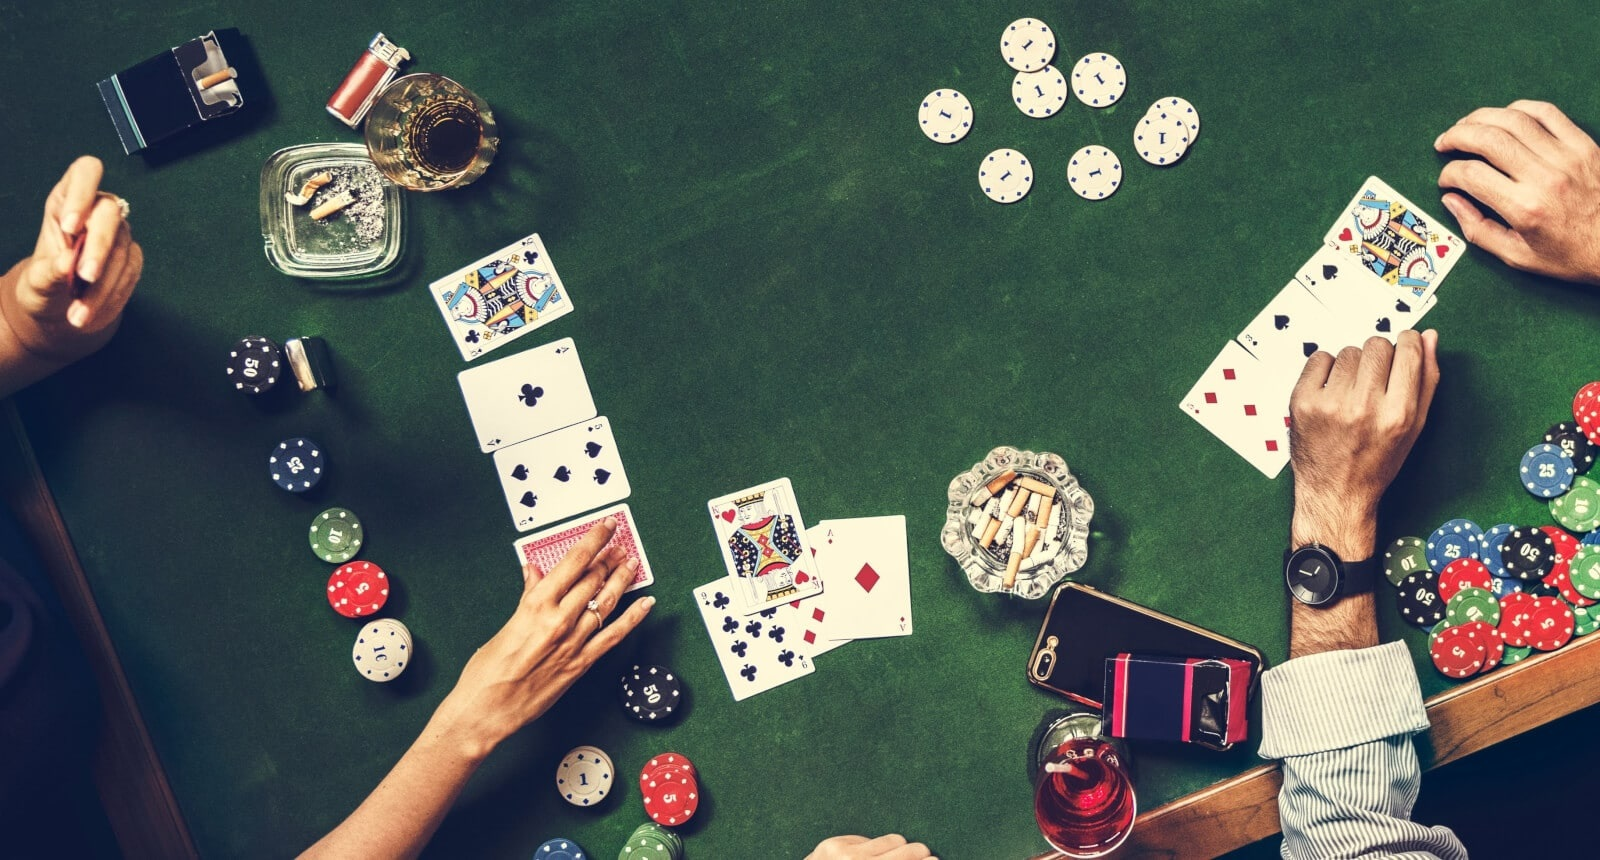 Play poker confidently with reliable cheating devices